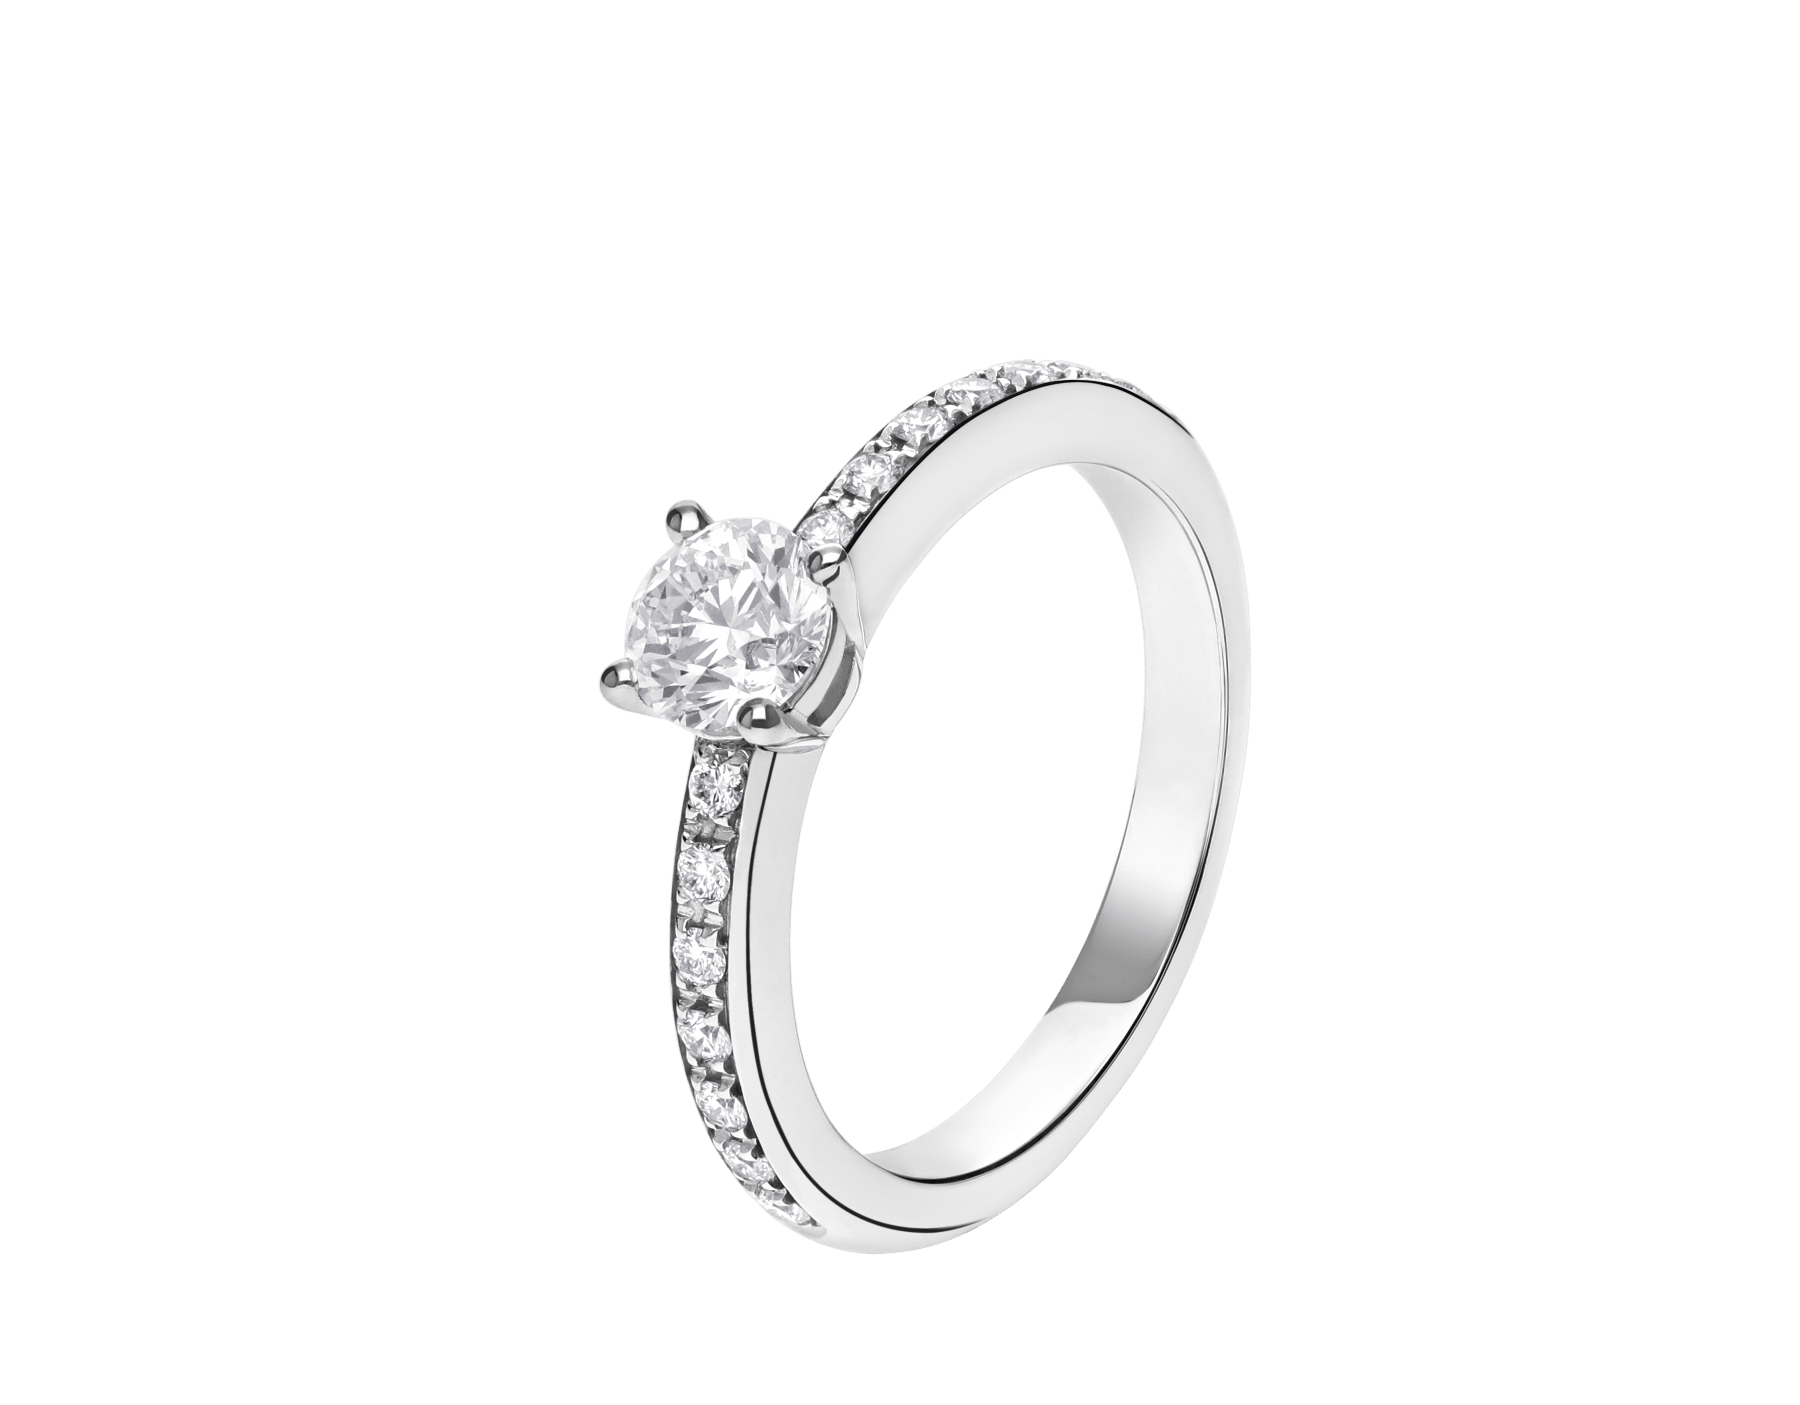 Griffe solitaire ring in platinum with a round brilliant cut diamond and pavé diamonds 340252 image 1